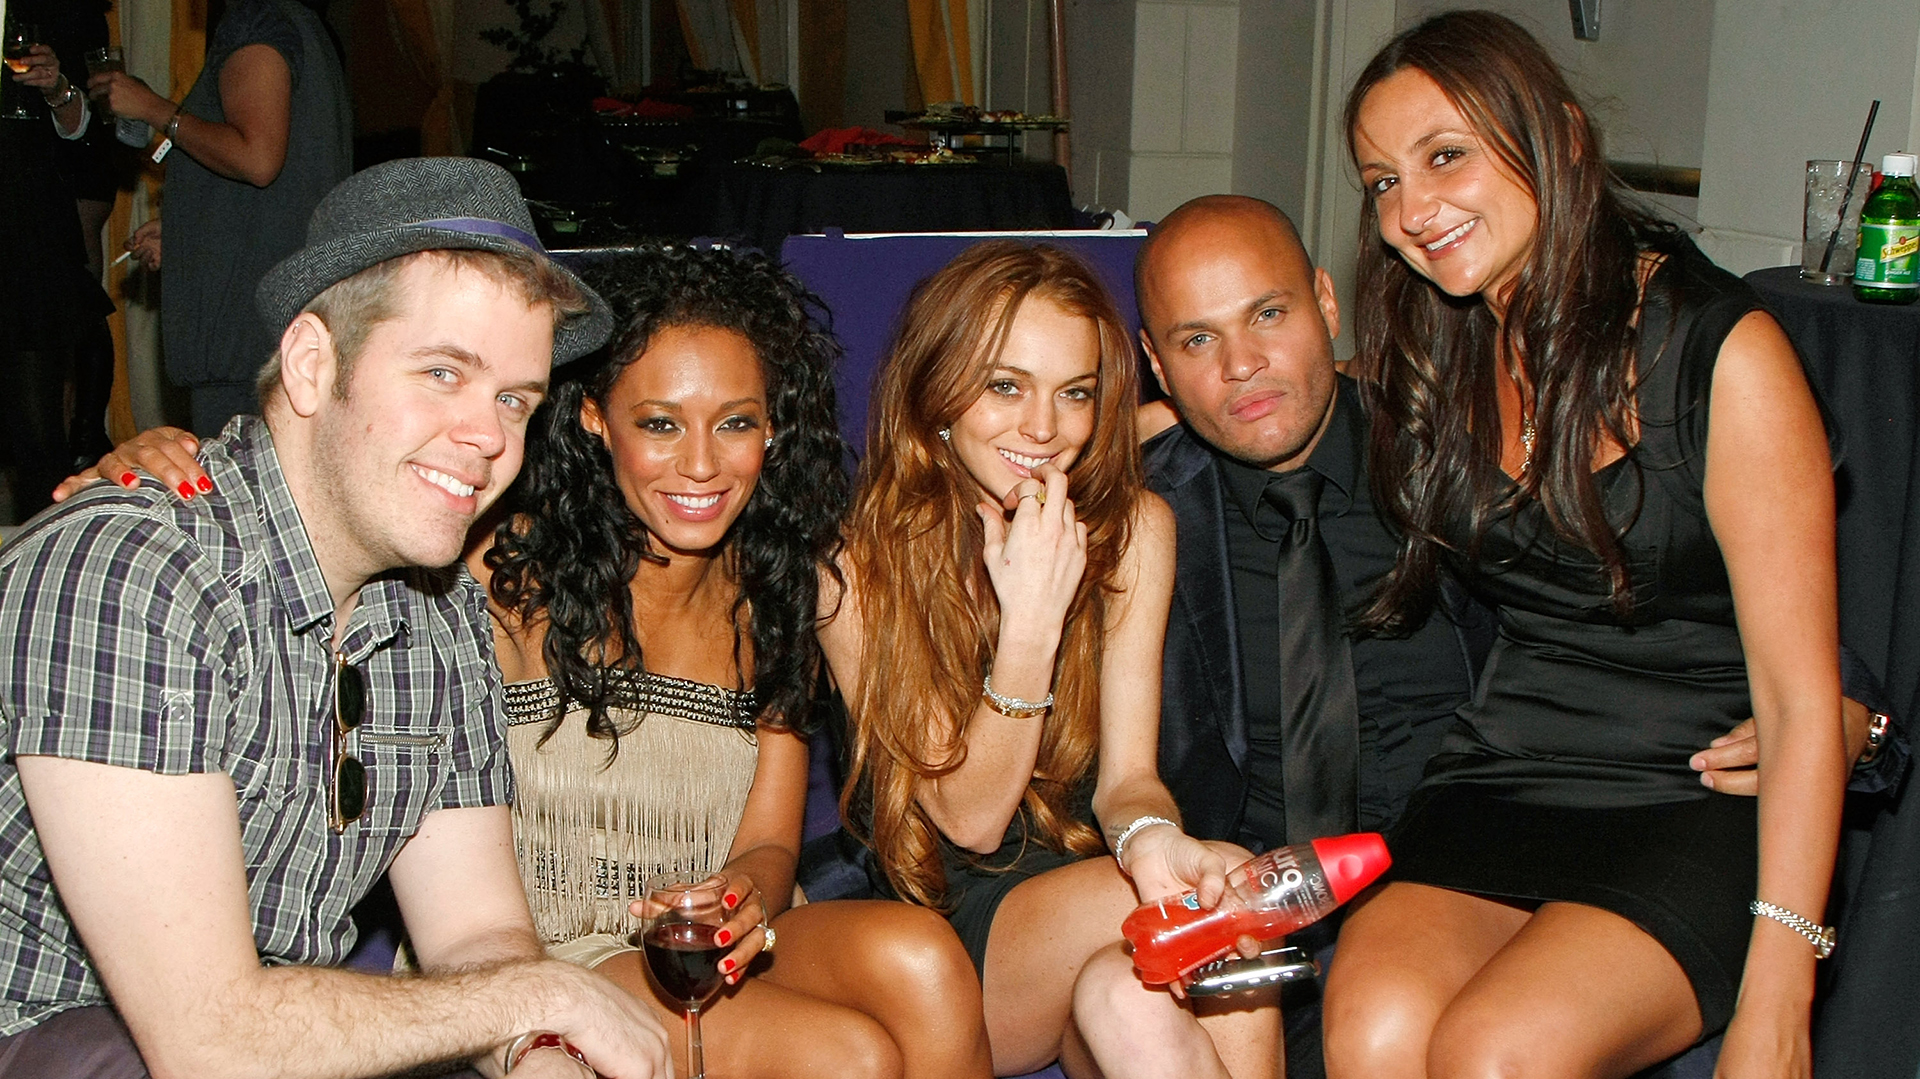 De izquierda a derecha, el bloguero Perez Hilton, Melanie Brown, Lindsay Lohan, Stephen Belafonte y Lorena Bendinskas de The Silver Spoon posan en un evento de la serie para adultos 'Peepshow' en el Planet Hollywood Resort & Casino de Las Vegas (Ethan Miller/Getty Images para BASE Entertainment)